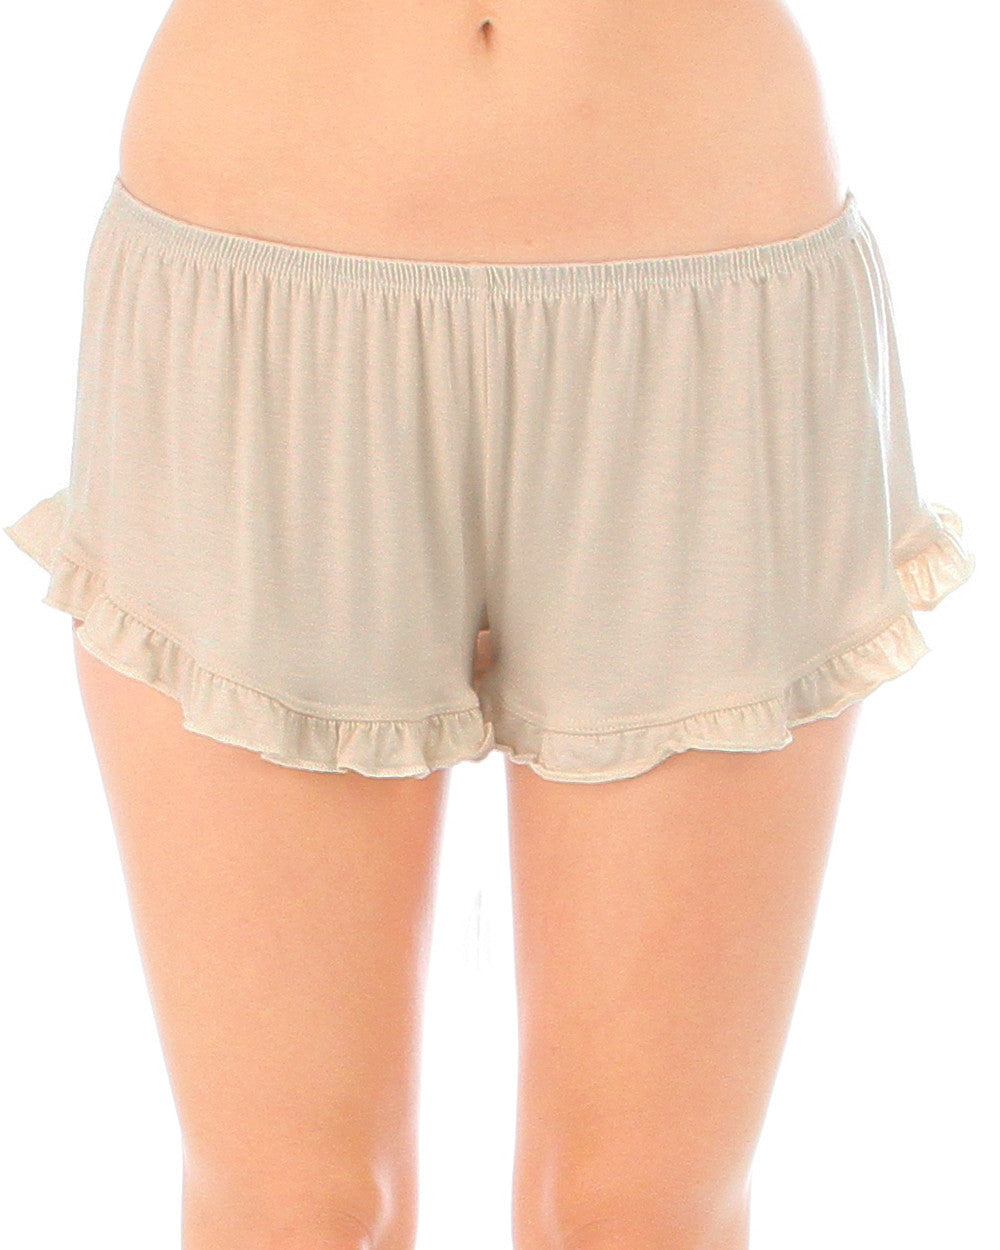 Vodi Shorts With Ruffle Trim In Taupe